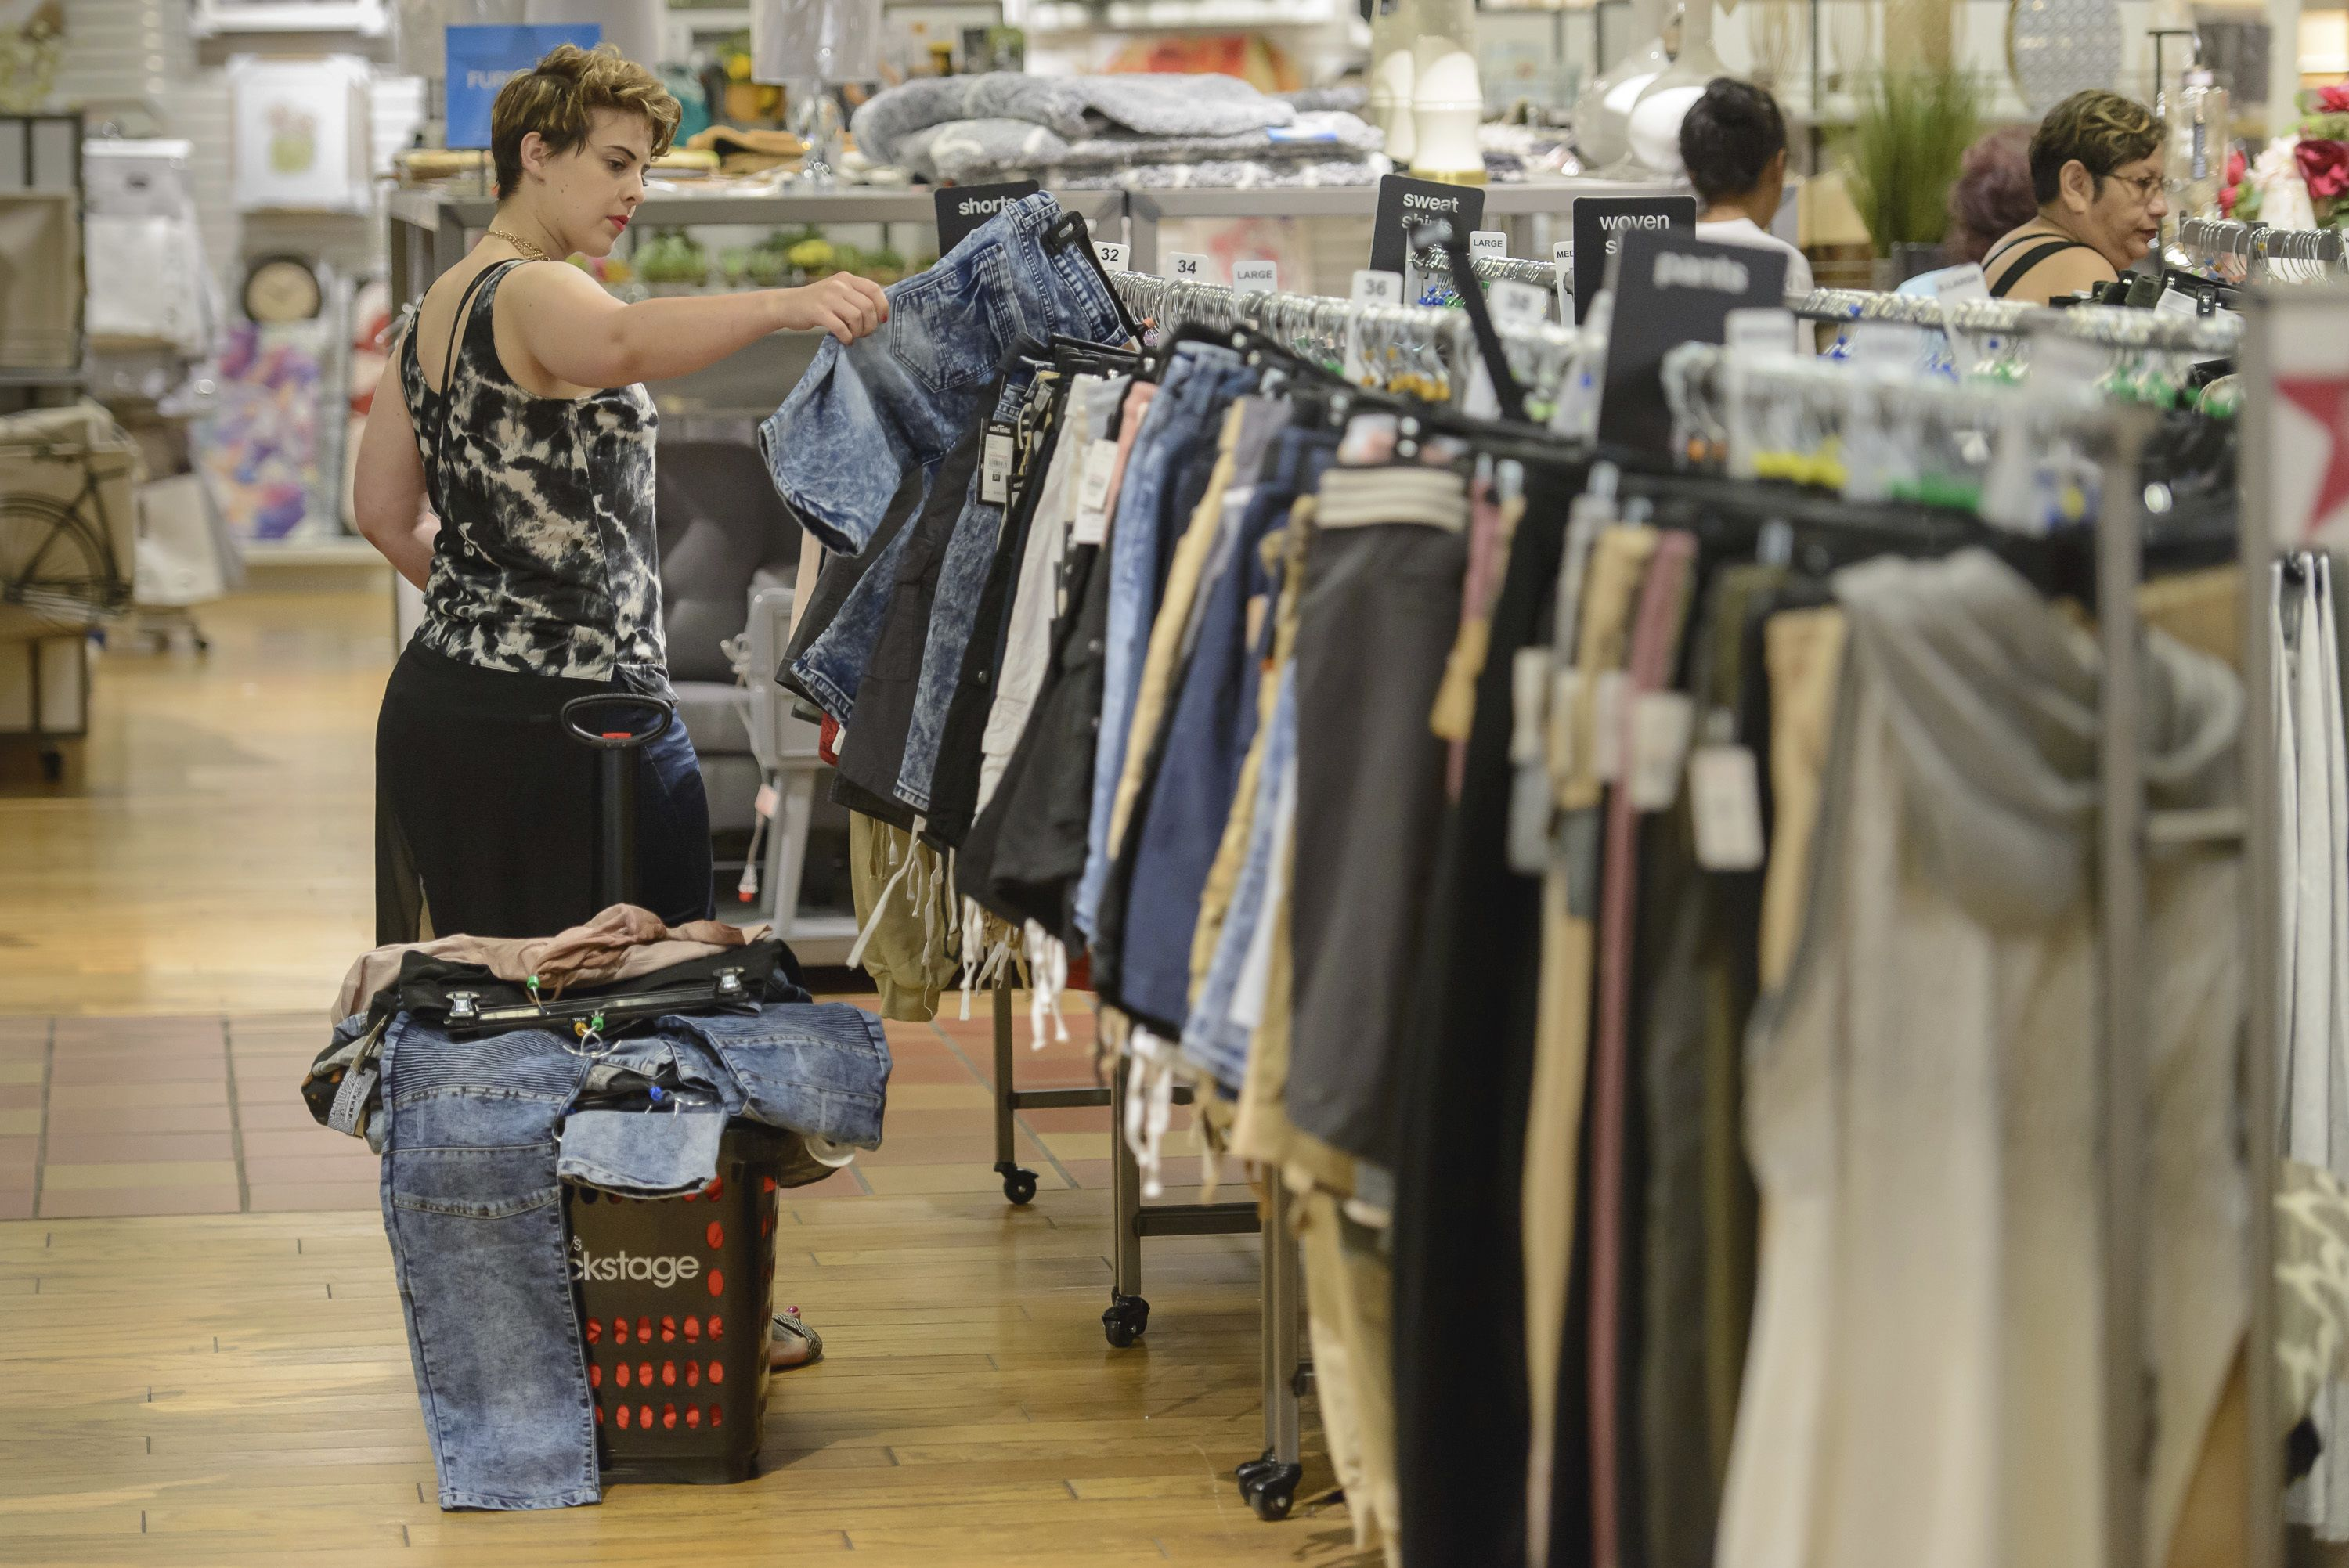 Copyright 2017 The Associated Press. All rights reserved. This material may not be published, broadcast, rewritten or redistributed without permission.Mandatory Credit: Photo by AP/REX/Shutterstock (8871393a)Carley Davis from Flint, Michigan does some shopping during Macy's Backstage grand opening at the Fairlane Town Center, in Dearborn, Mich. Macy's is opening Macy's Backstage stores, within a store, across the country designed for the savvy and cost conscious shopperMacy's Backstage Fairlane Town Center Grand Opening, Dearborn, USA - 17 Jun 2017